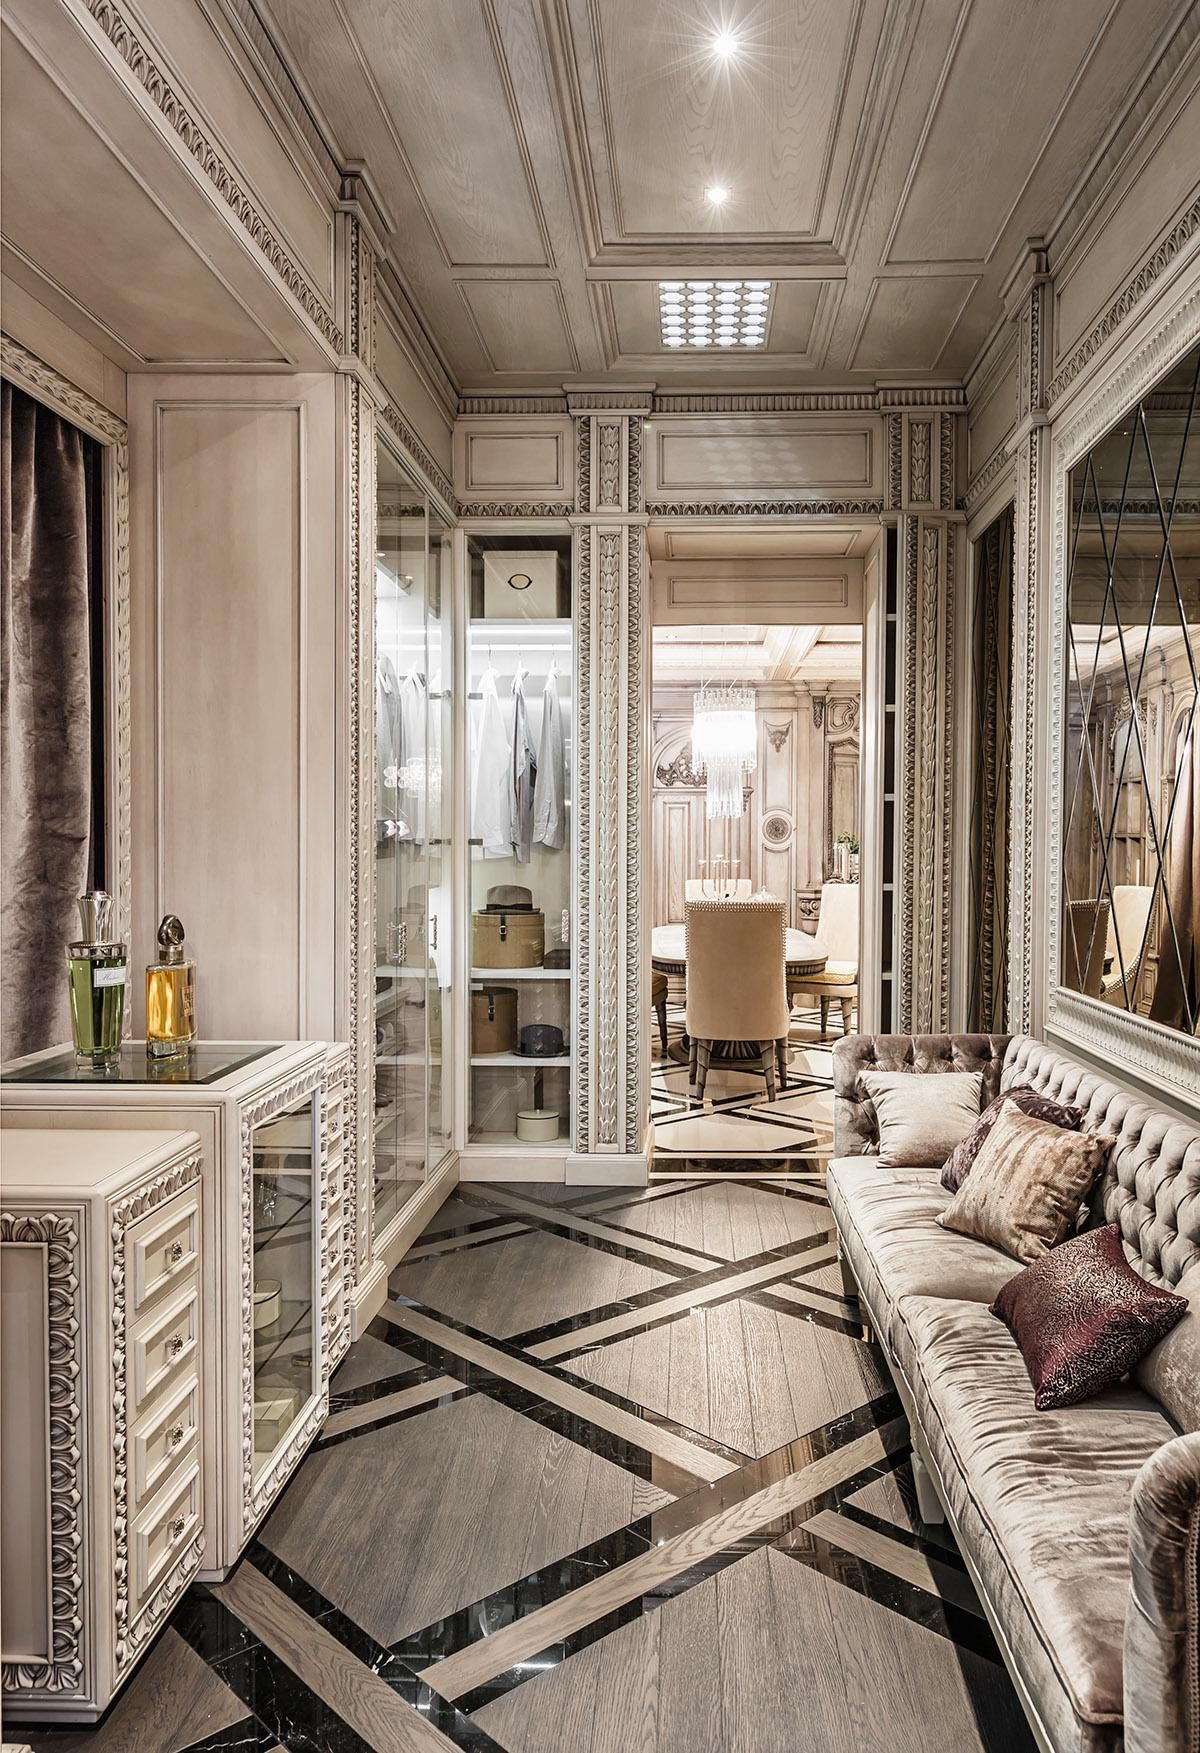 Most Expensive Fancy Houses In The World [BEST] | Art deco ...